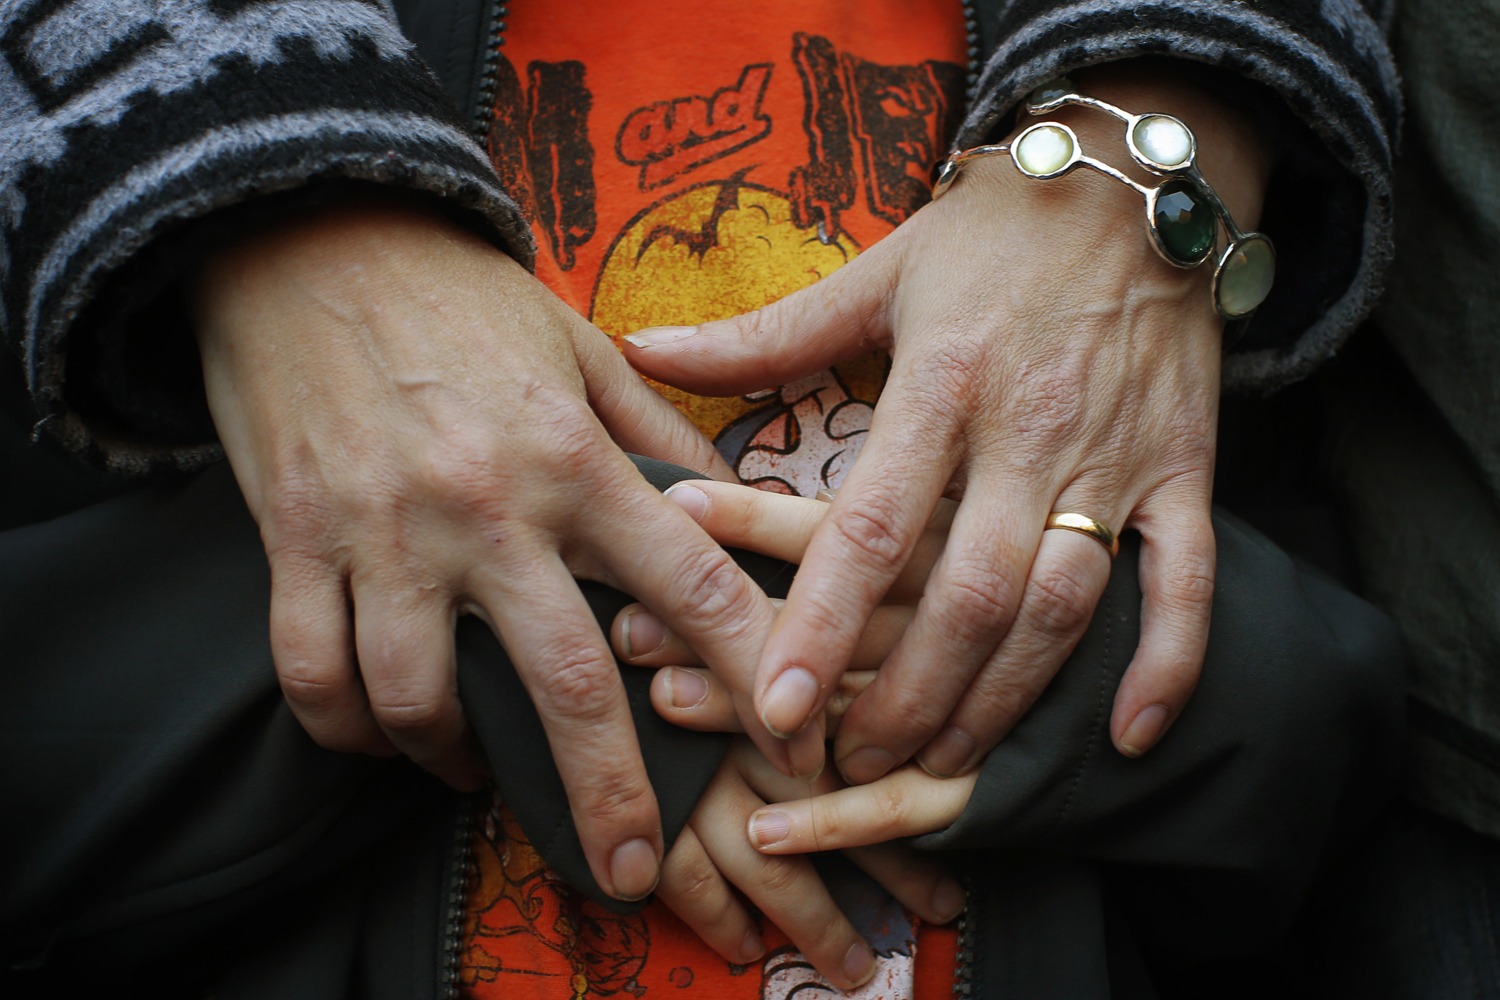 April 21, 2013. A mother holds the hands of her son as they attend an interfaith worship service at a memorial on Boylston Street for the victims of the Boston Marathon bombings in Boston, Massachusetts.